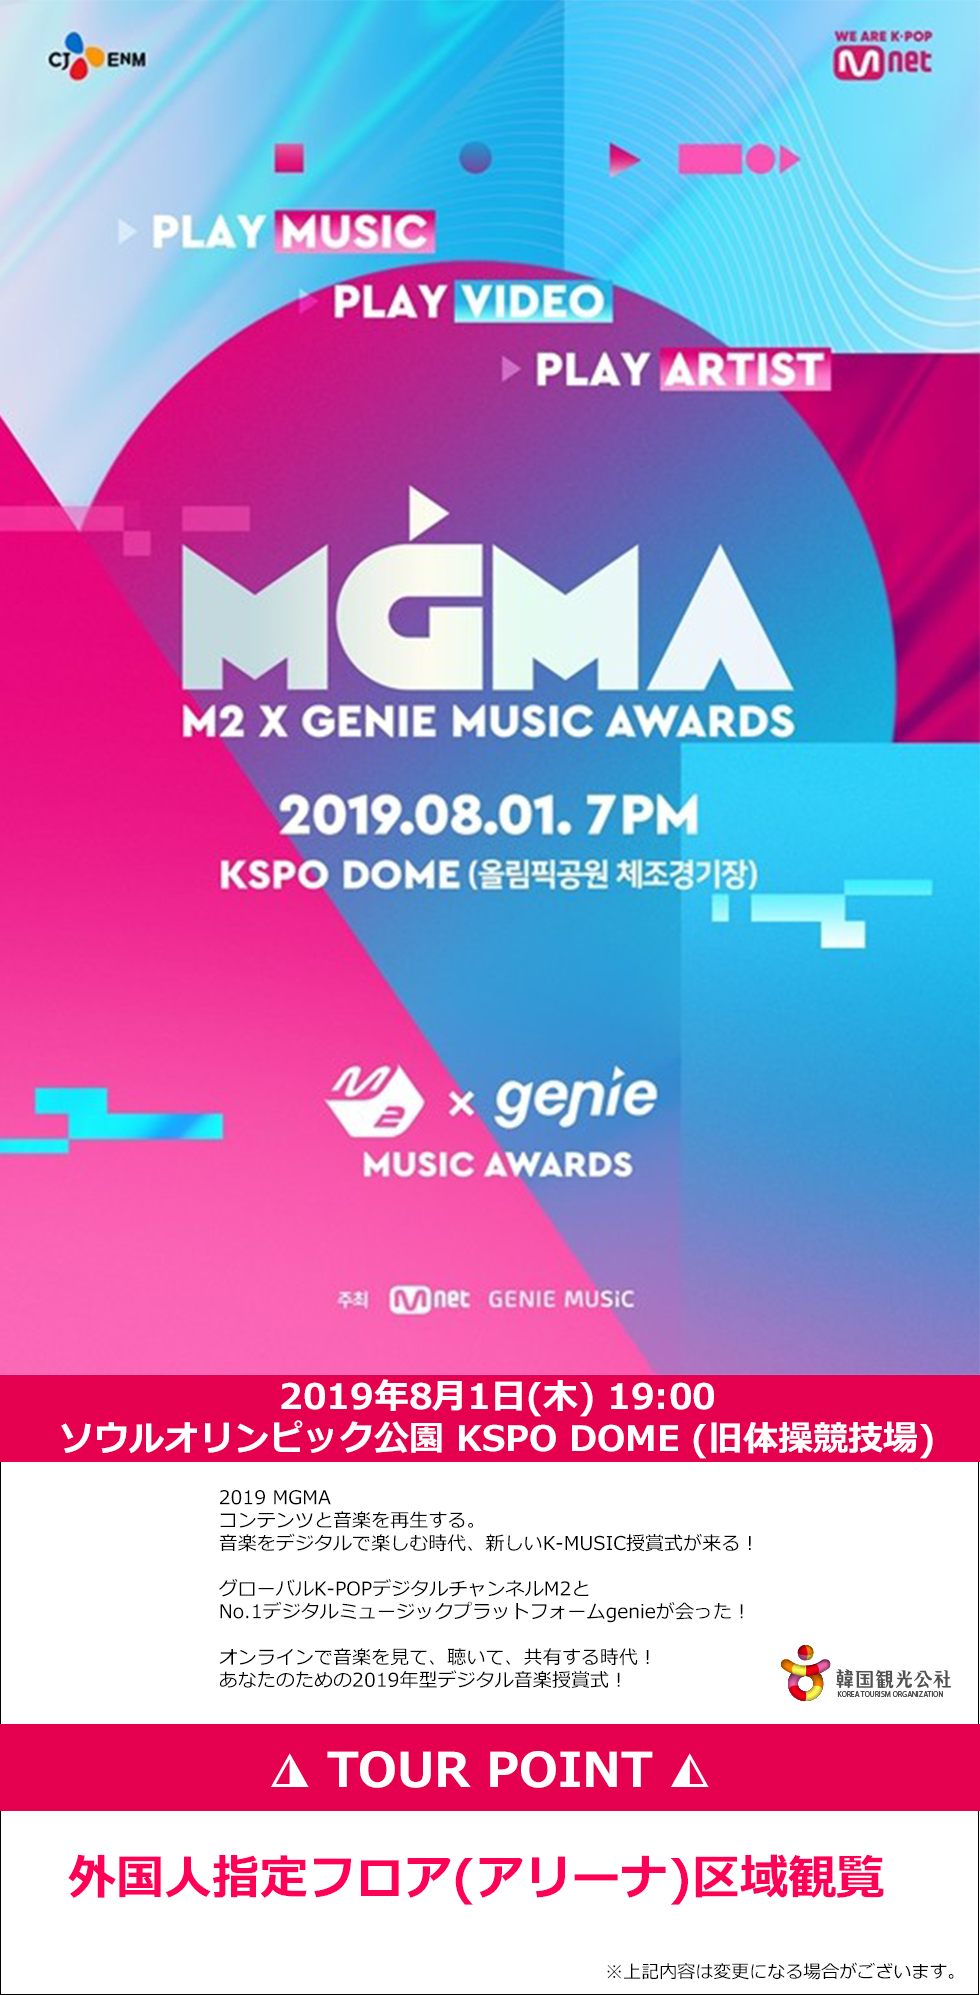 【日本公式】2019 M2×GENIE MUSIC AWARDS (2019 MGMA)